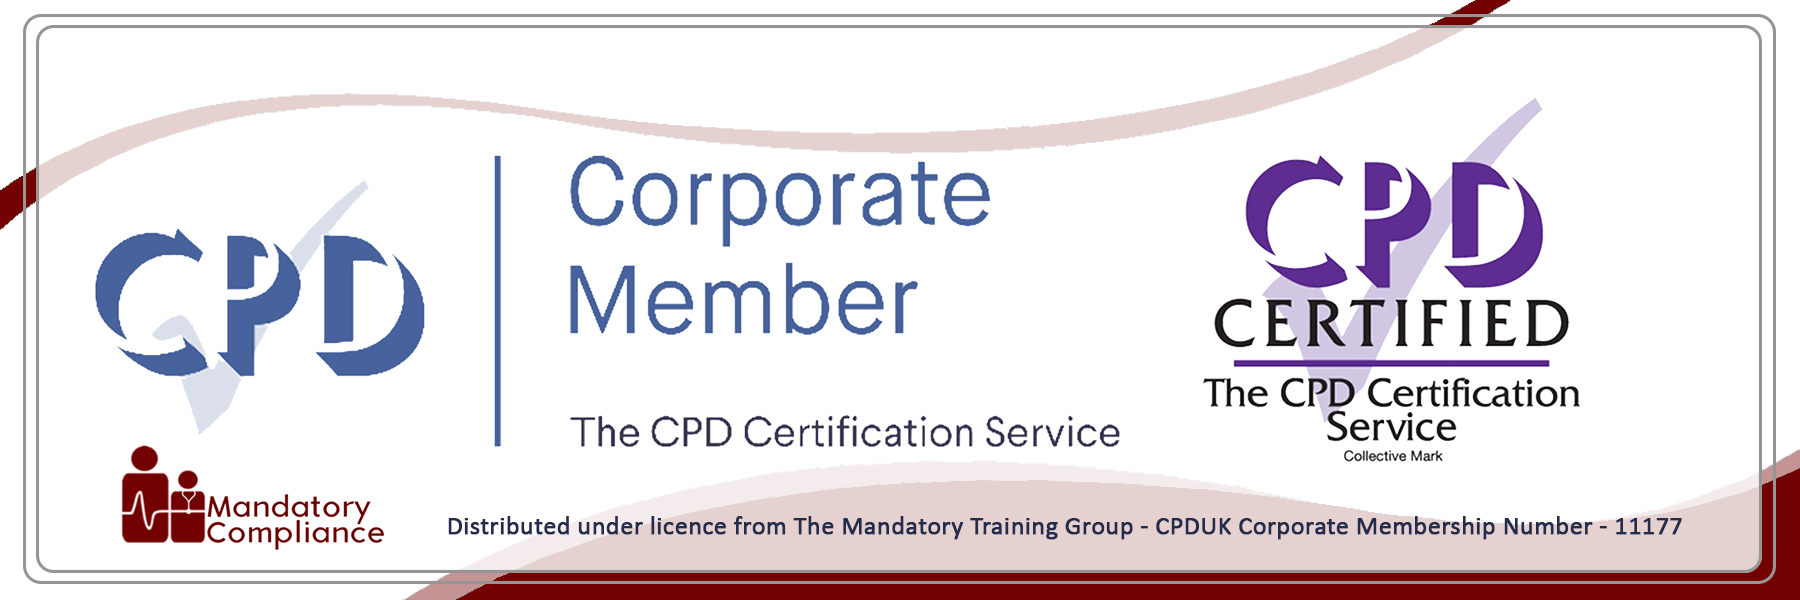 COSHH Training – COSHH - Online Course - CPDUK Accredited - Mandatory Compliance UK -